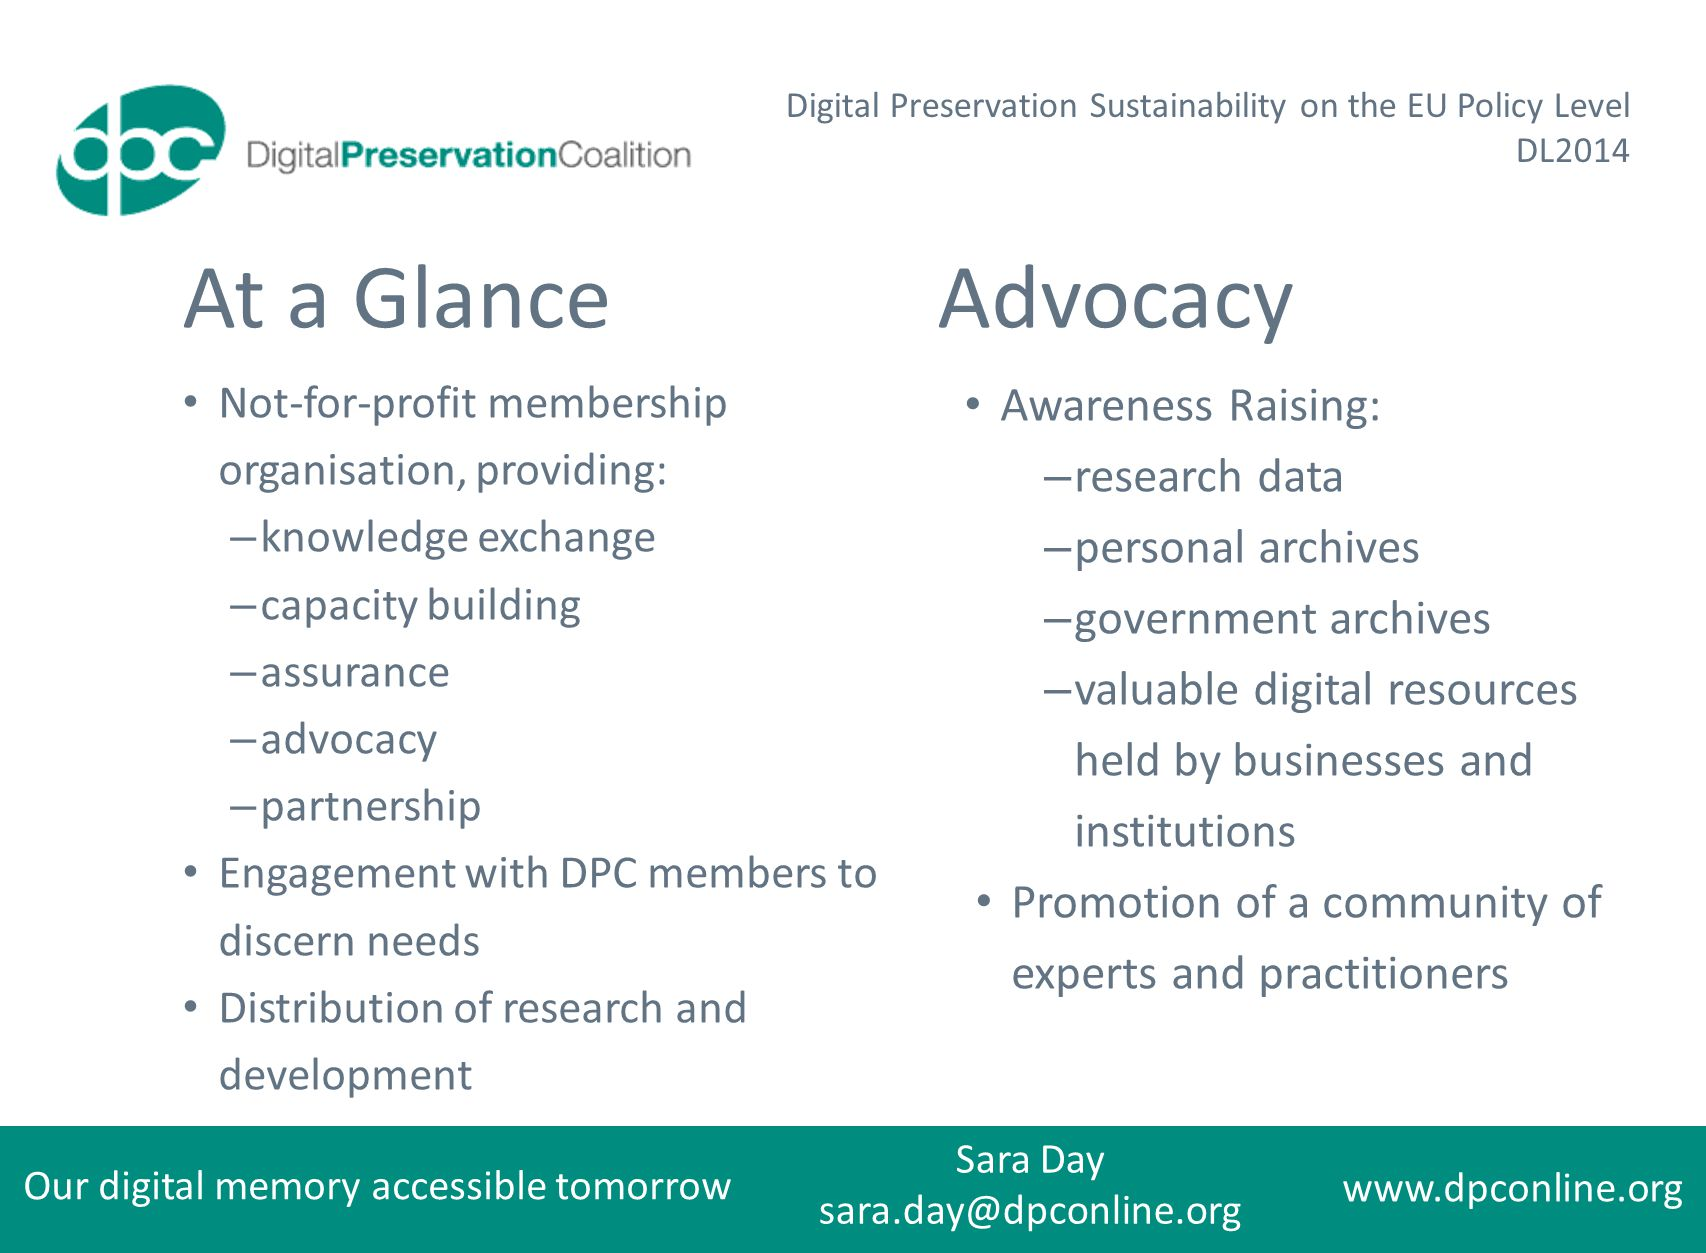 Our digital memory accessible tomorrow Sara Day sara.day@dpconline.org www.dpconline.org Digital Preservation Sustainability on the EU Policy Level DL2014 At a Glance Not-for-profit membership organisation, providing: – knowledge exchange – capacity building – assurance – advocacy – partnership Engagement with DPC members to discern needs Distribution of research and development Advocacy Awareness Raising: – research data – personal archives – government archives – valuable digital resources held by businesses and institutions Promotion of a community of experts and practitioners